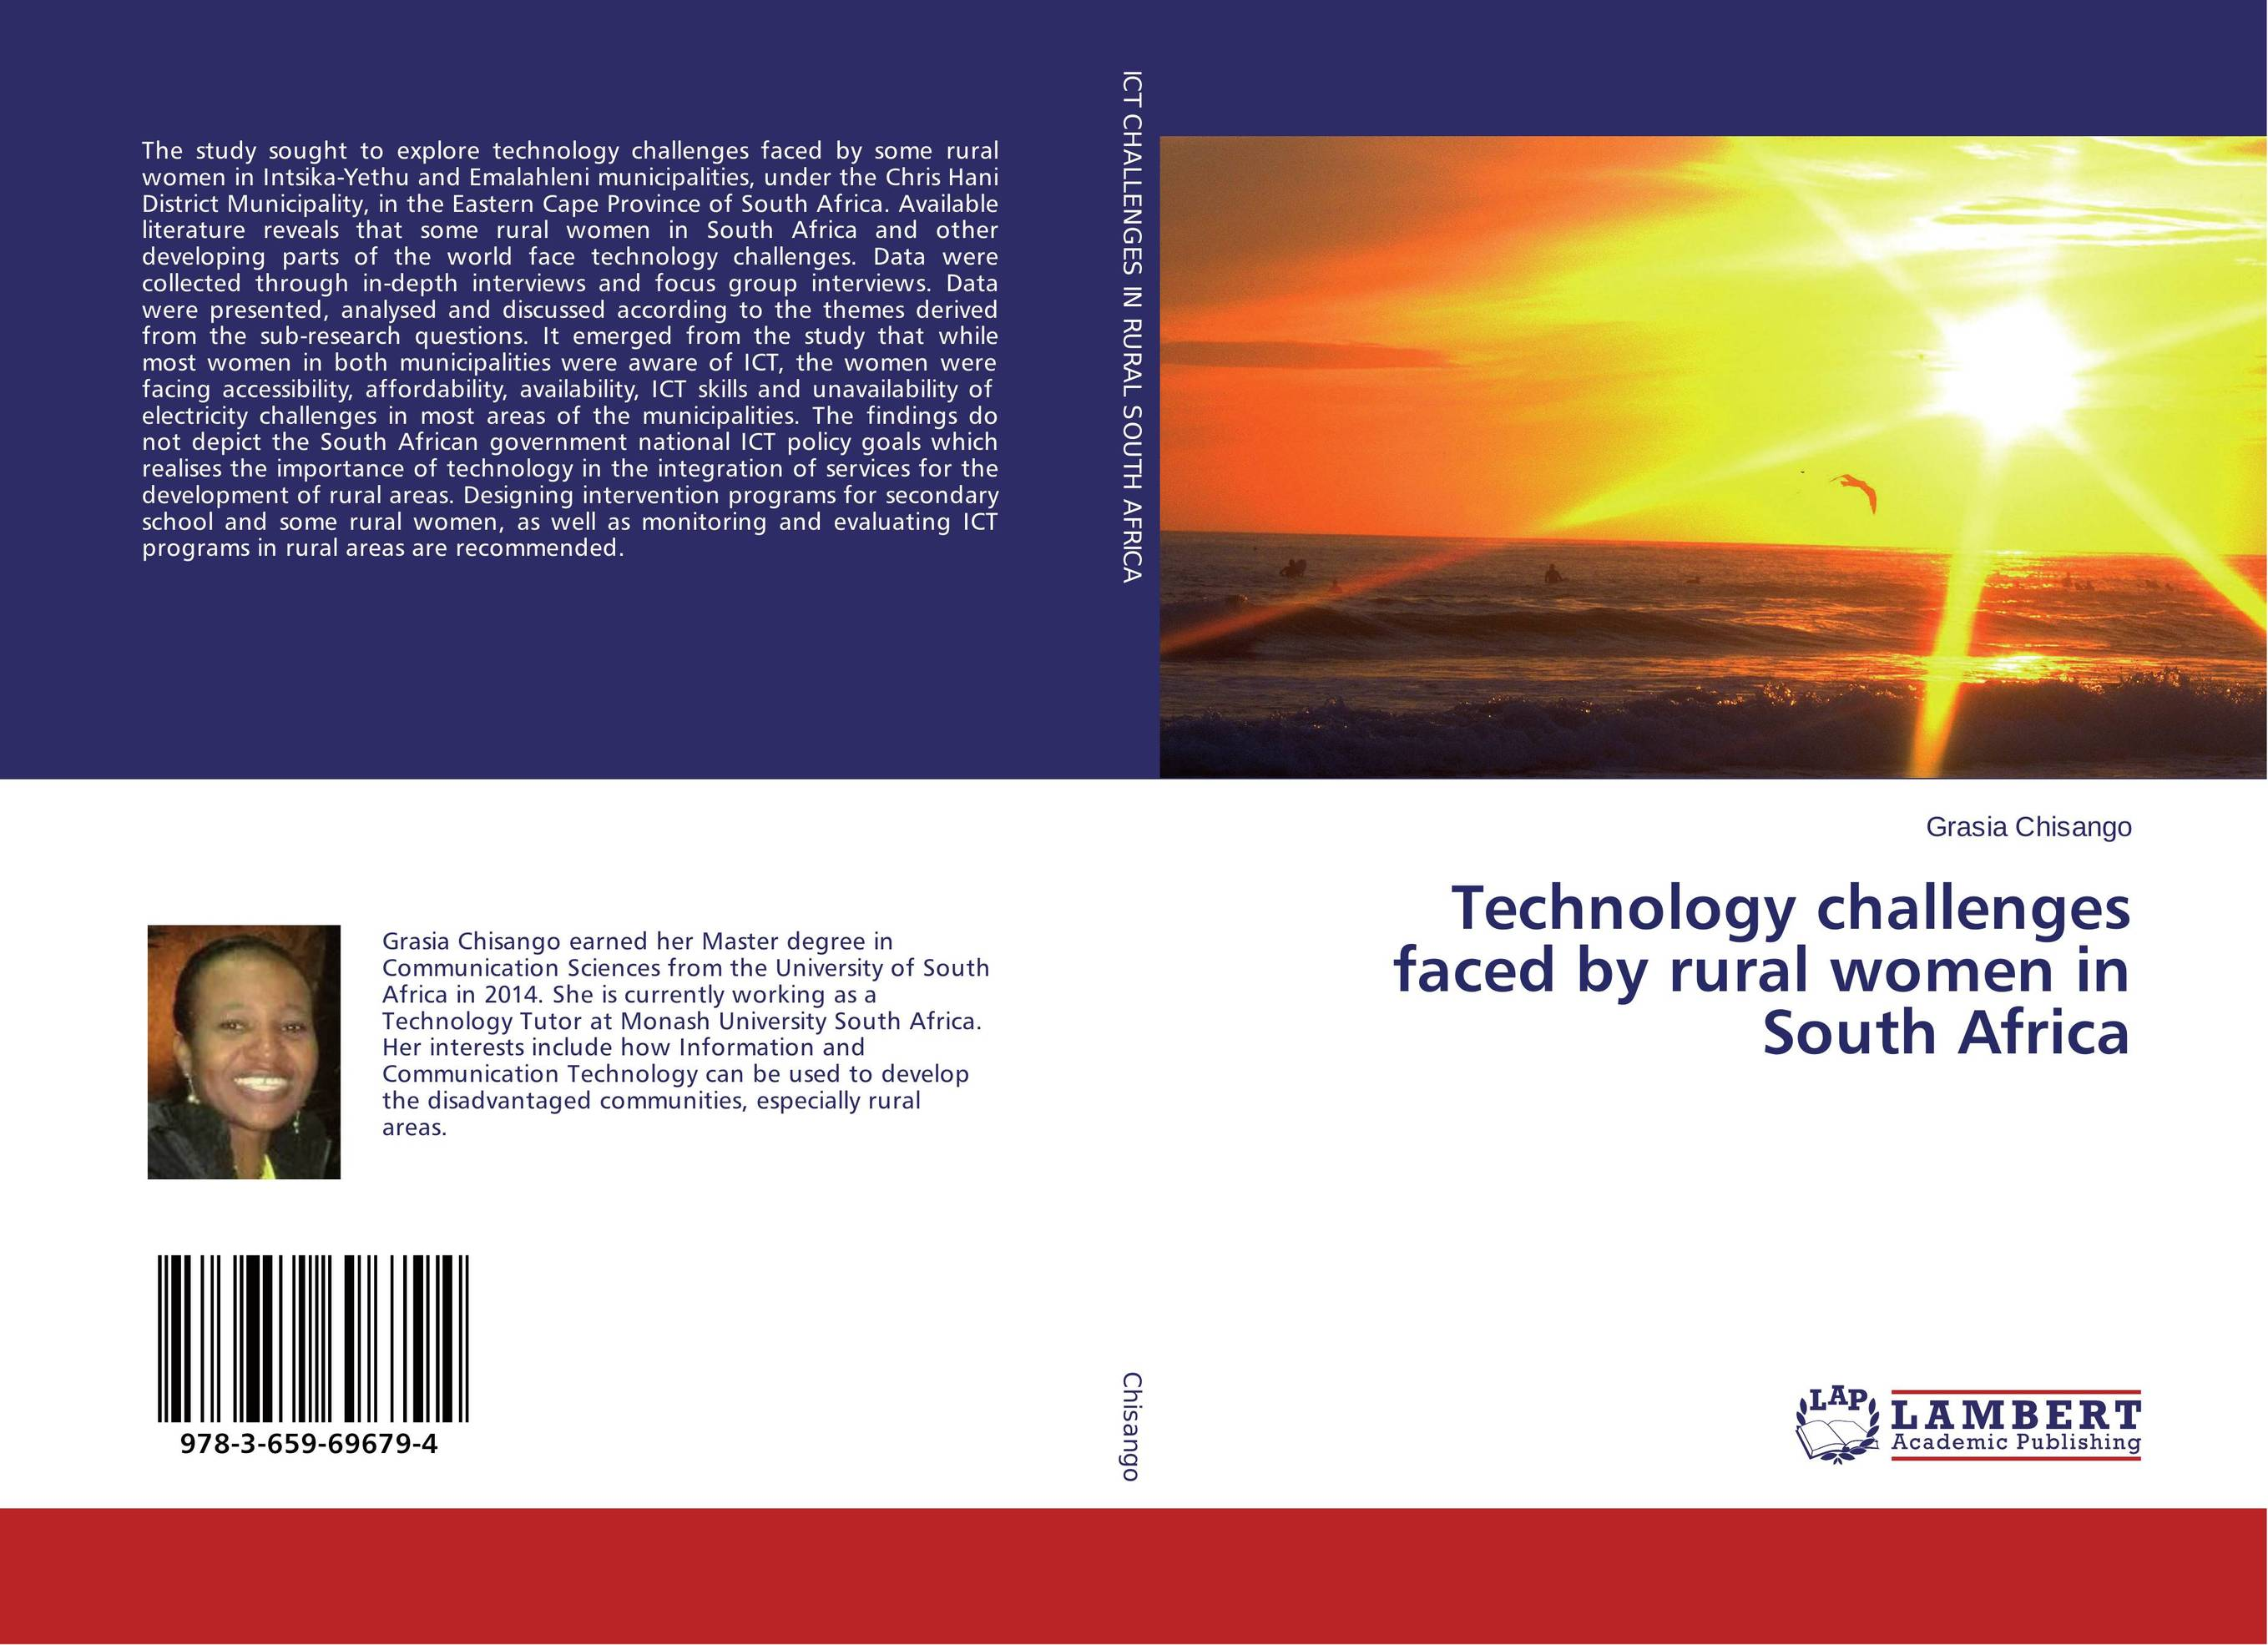 Technology challenges faced by rural women in South Africa south african mnes in africa